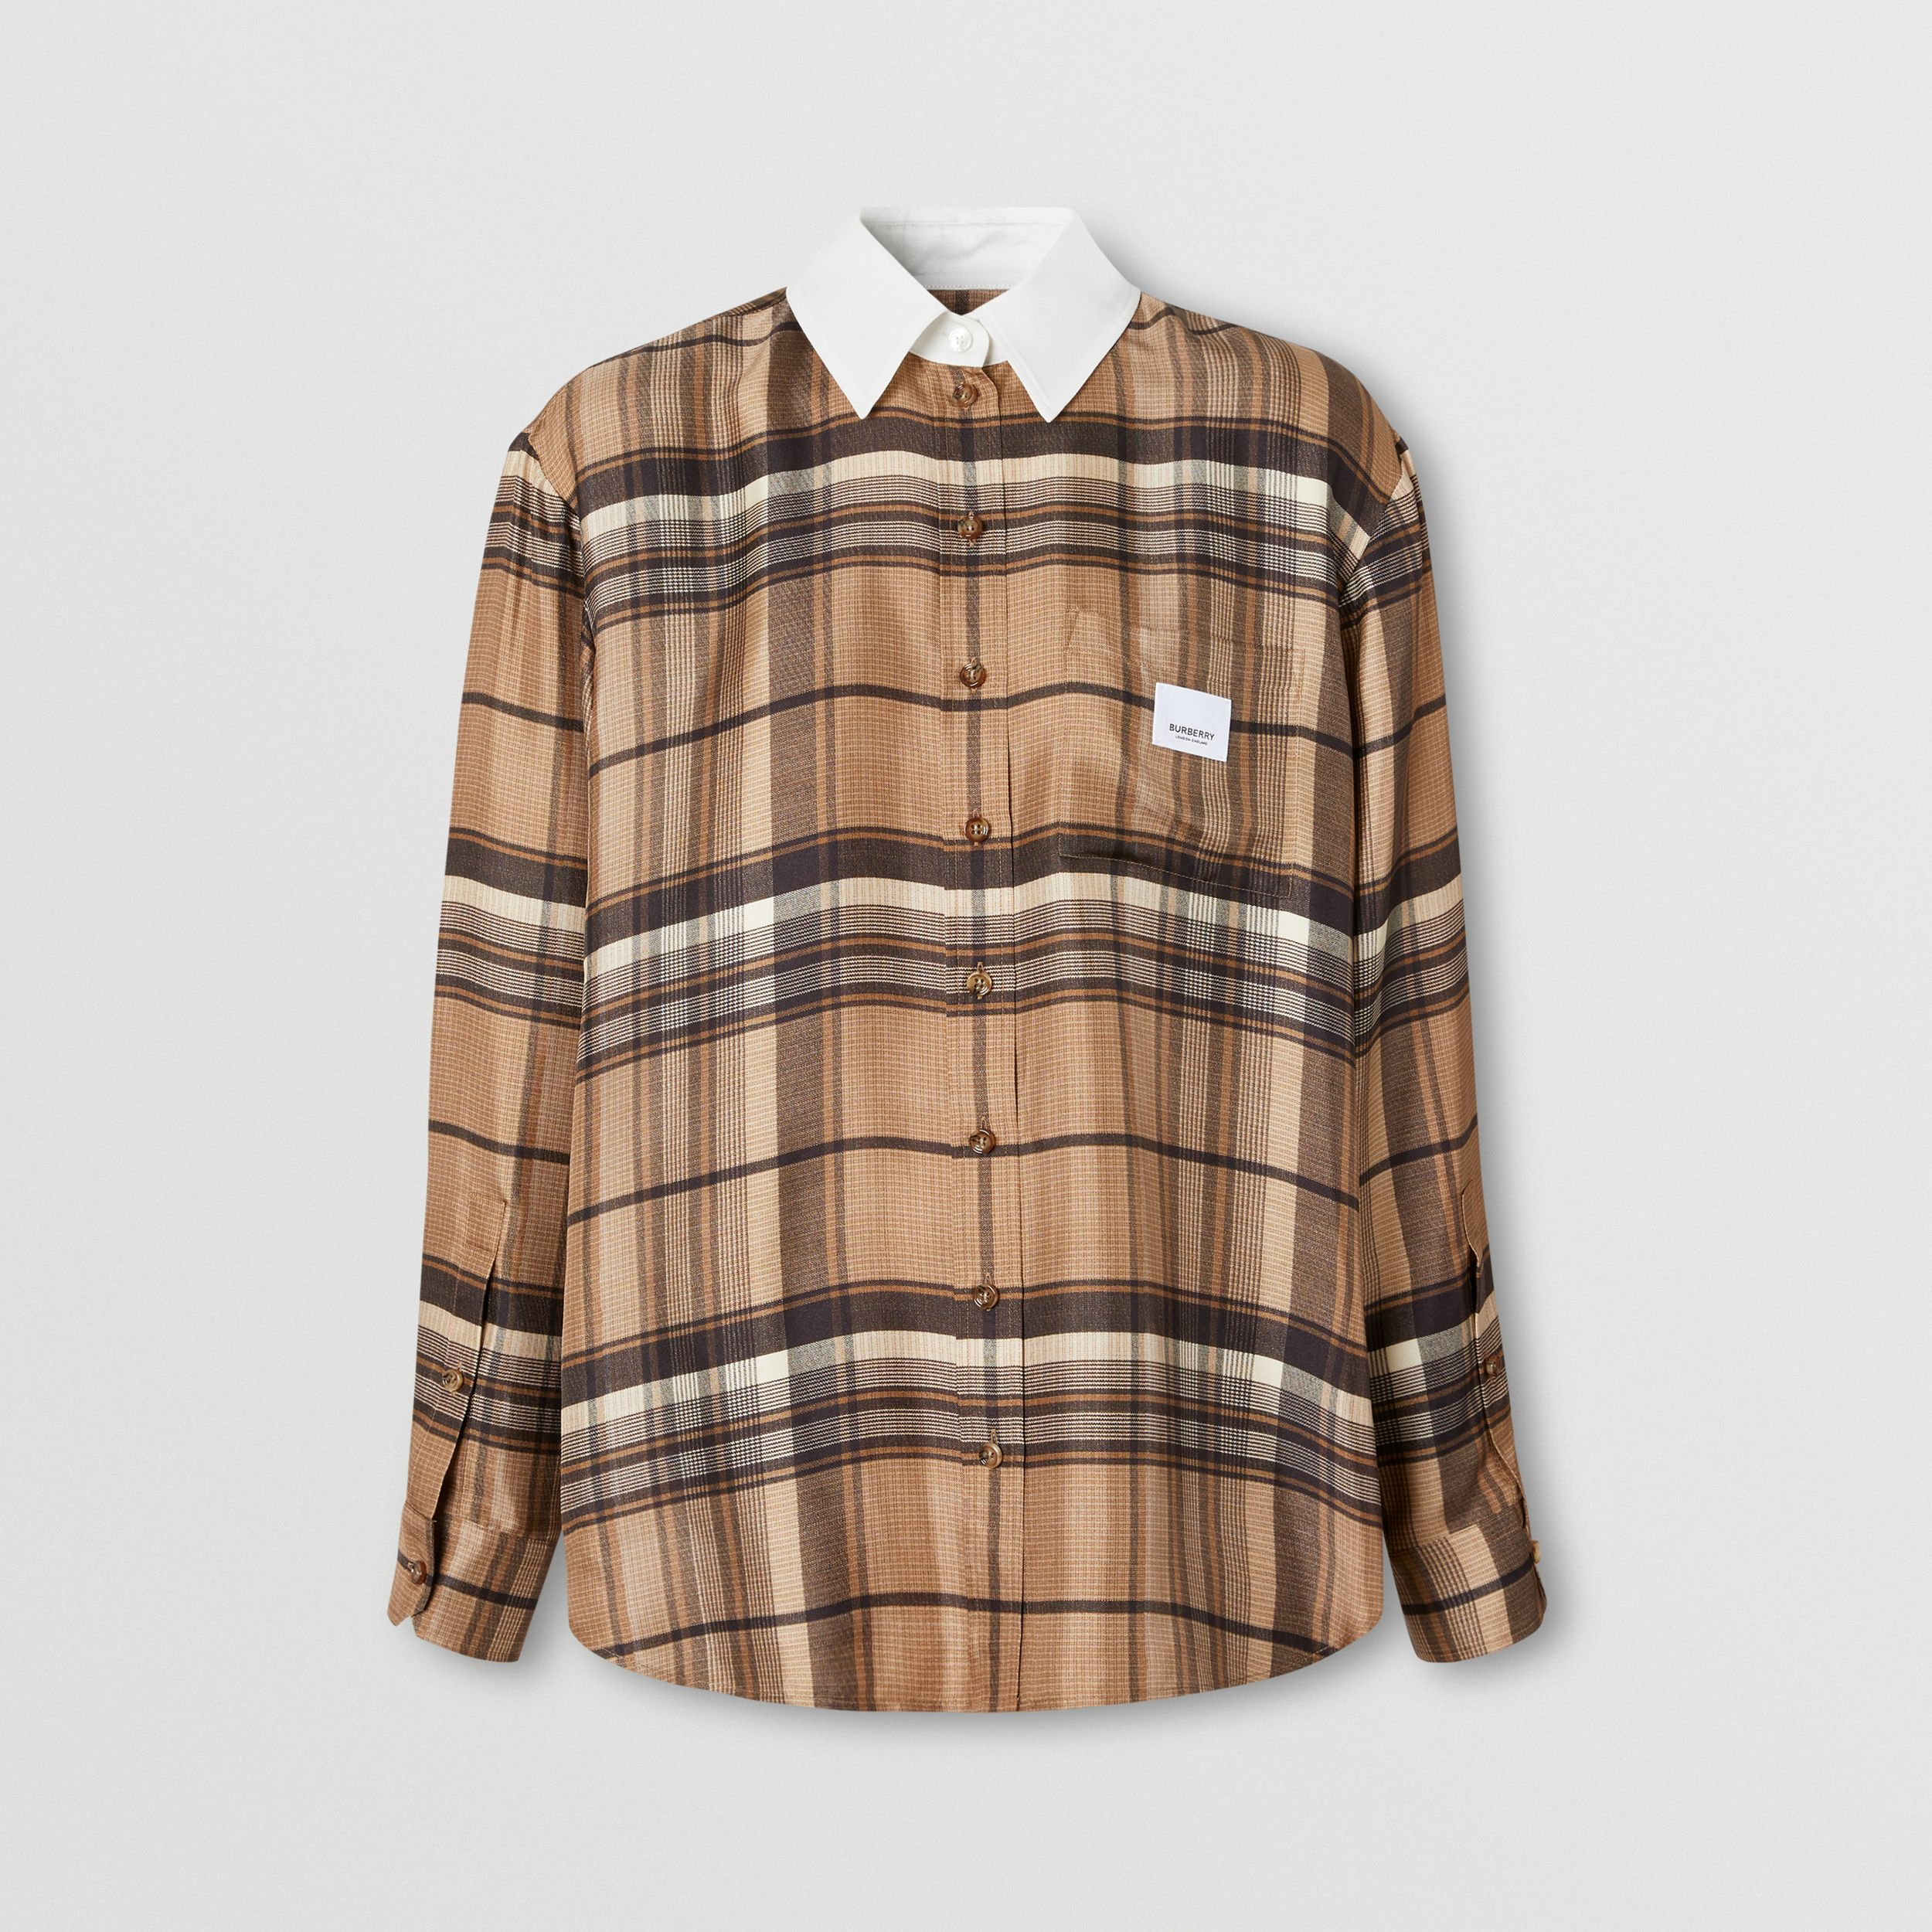 Logo Appliqué Check Print Silk Twill Shirt in Dark Tan - Women | Burberry - 4